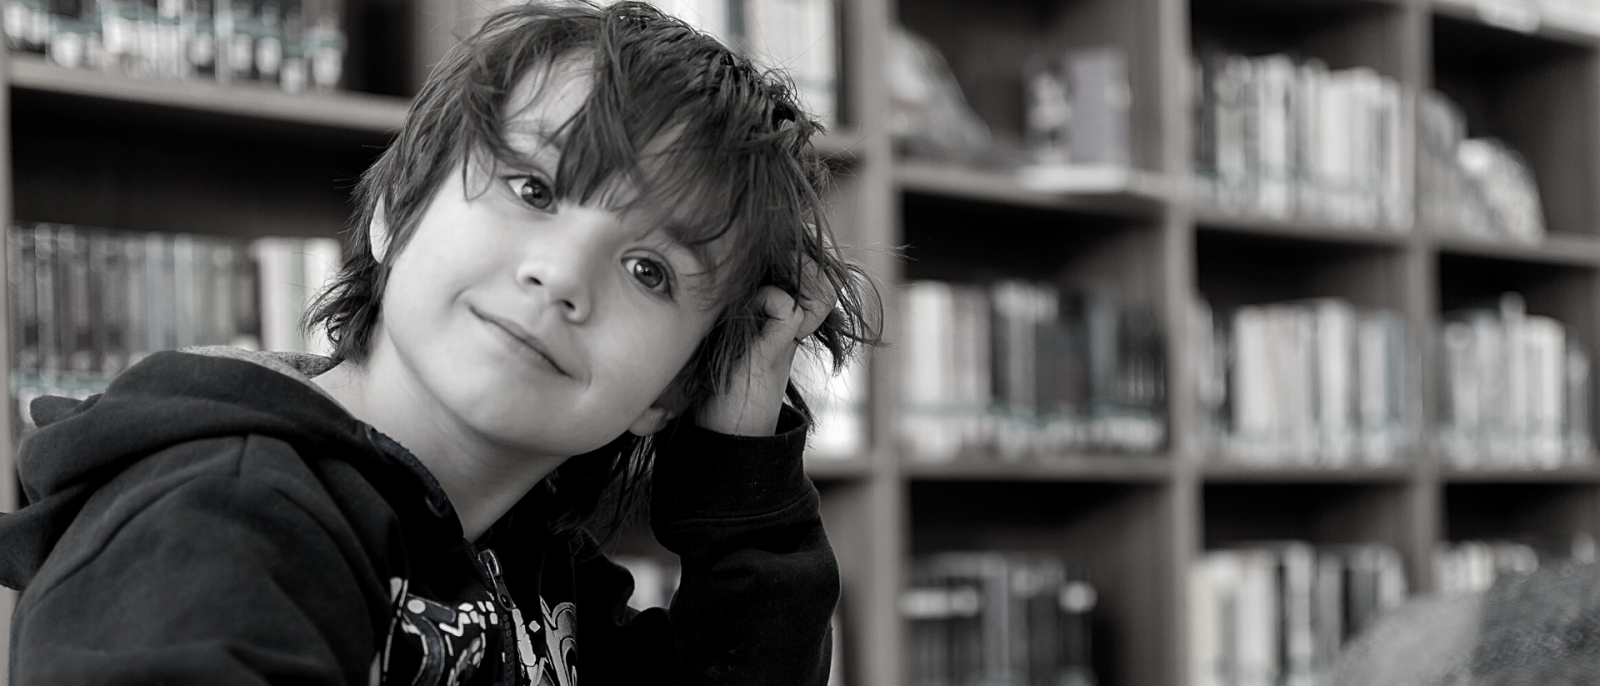 black and white photo of young boy scratching his head in thought